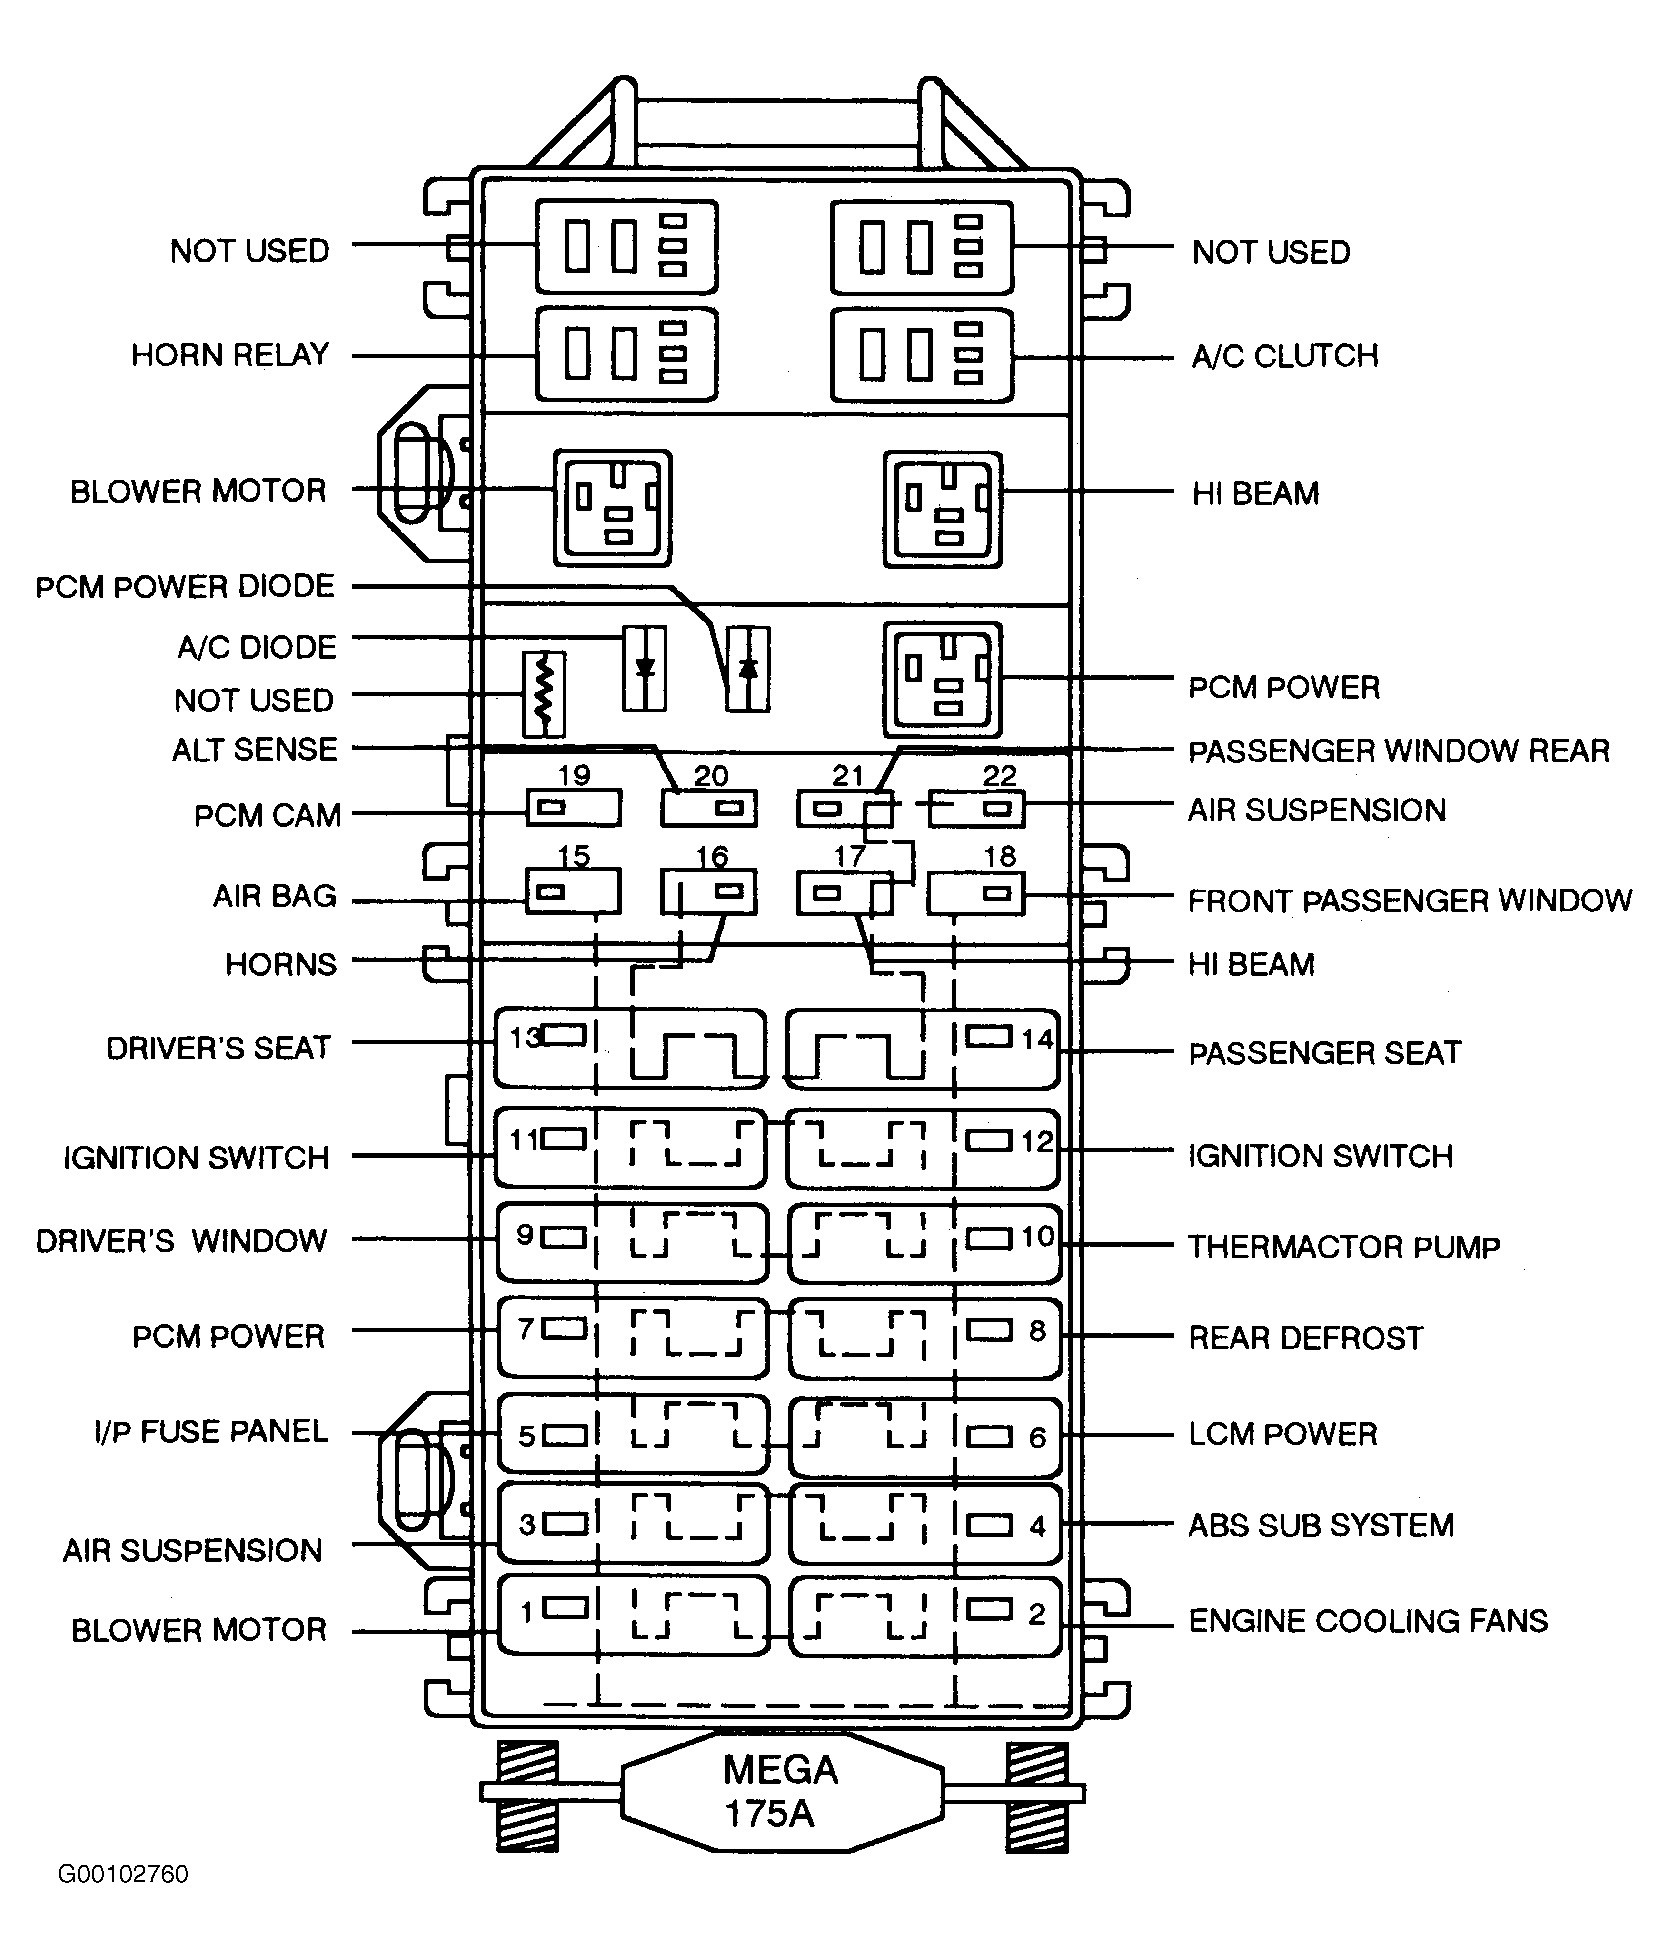 town car fuse box wiring diagram Lincoln Fuse Box Diagram fuse box for 1998 lincoln town car